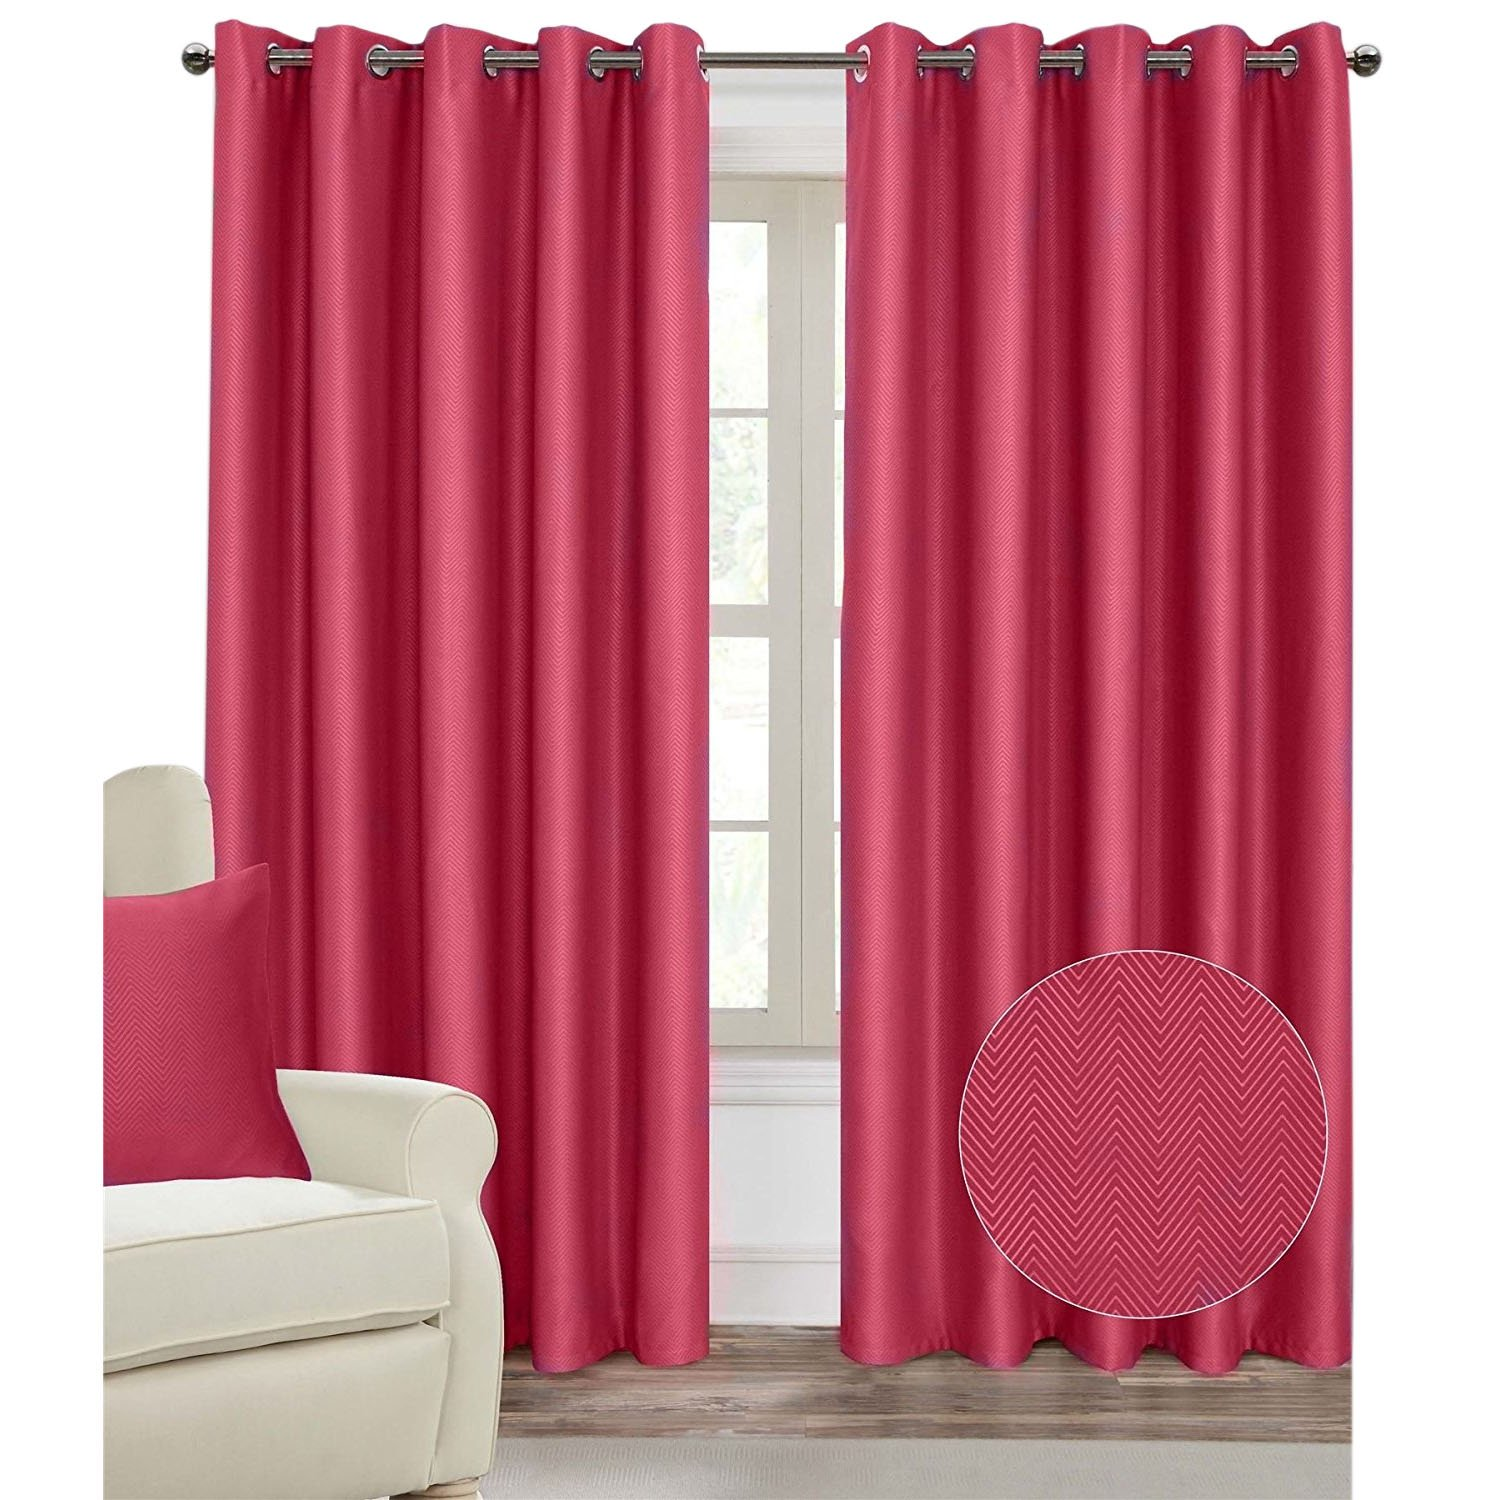 Homescapes Cream Eyelet Ring Top Blackout Thermal Curtain Pair Width 117cm (46